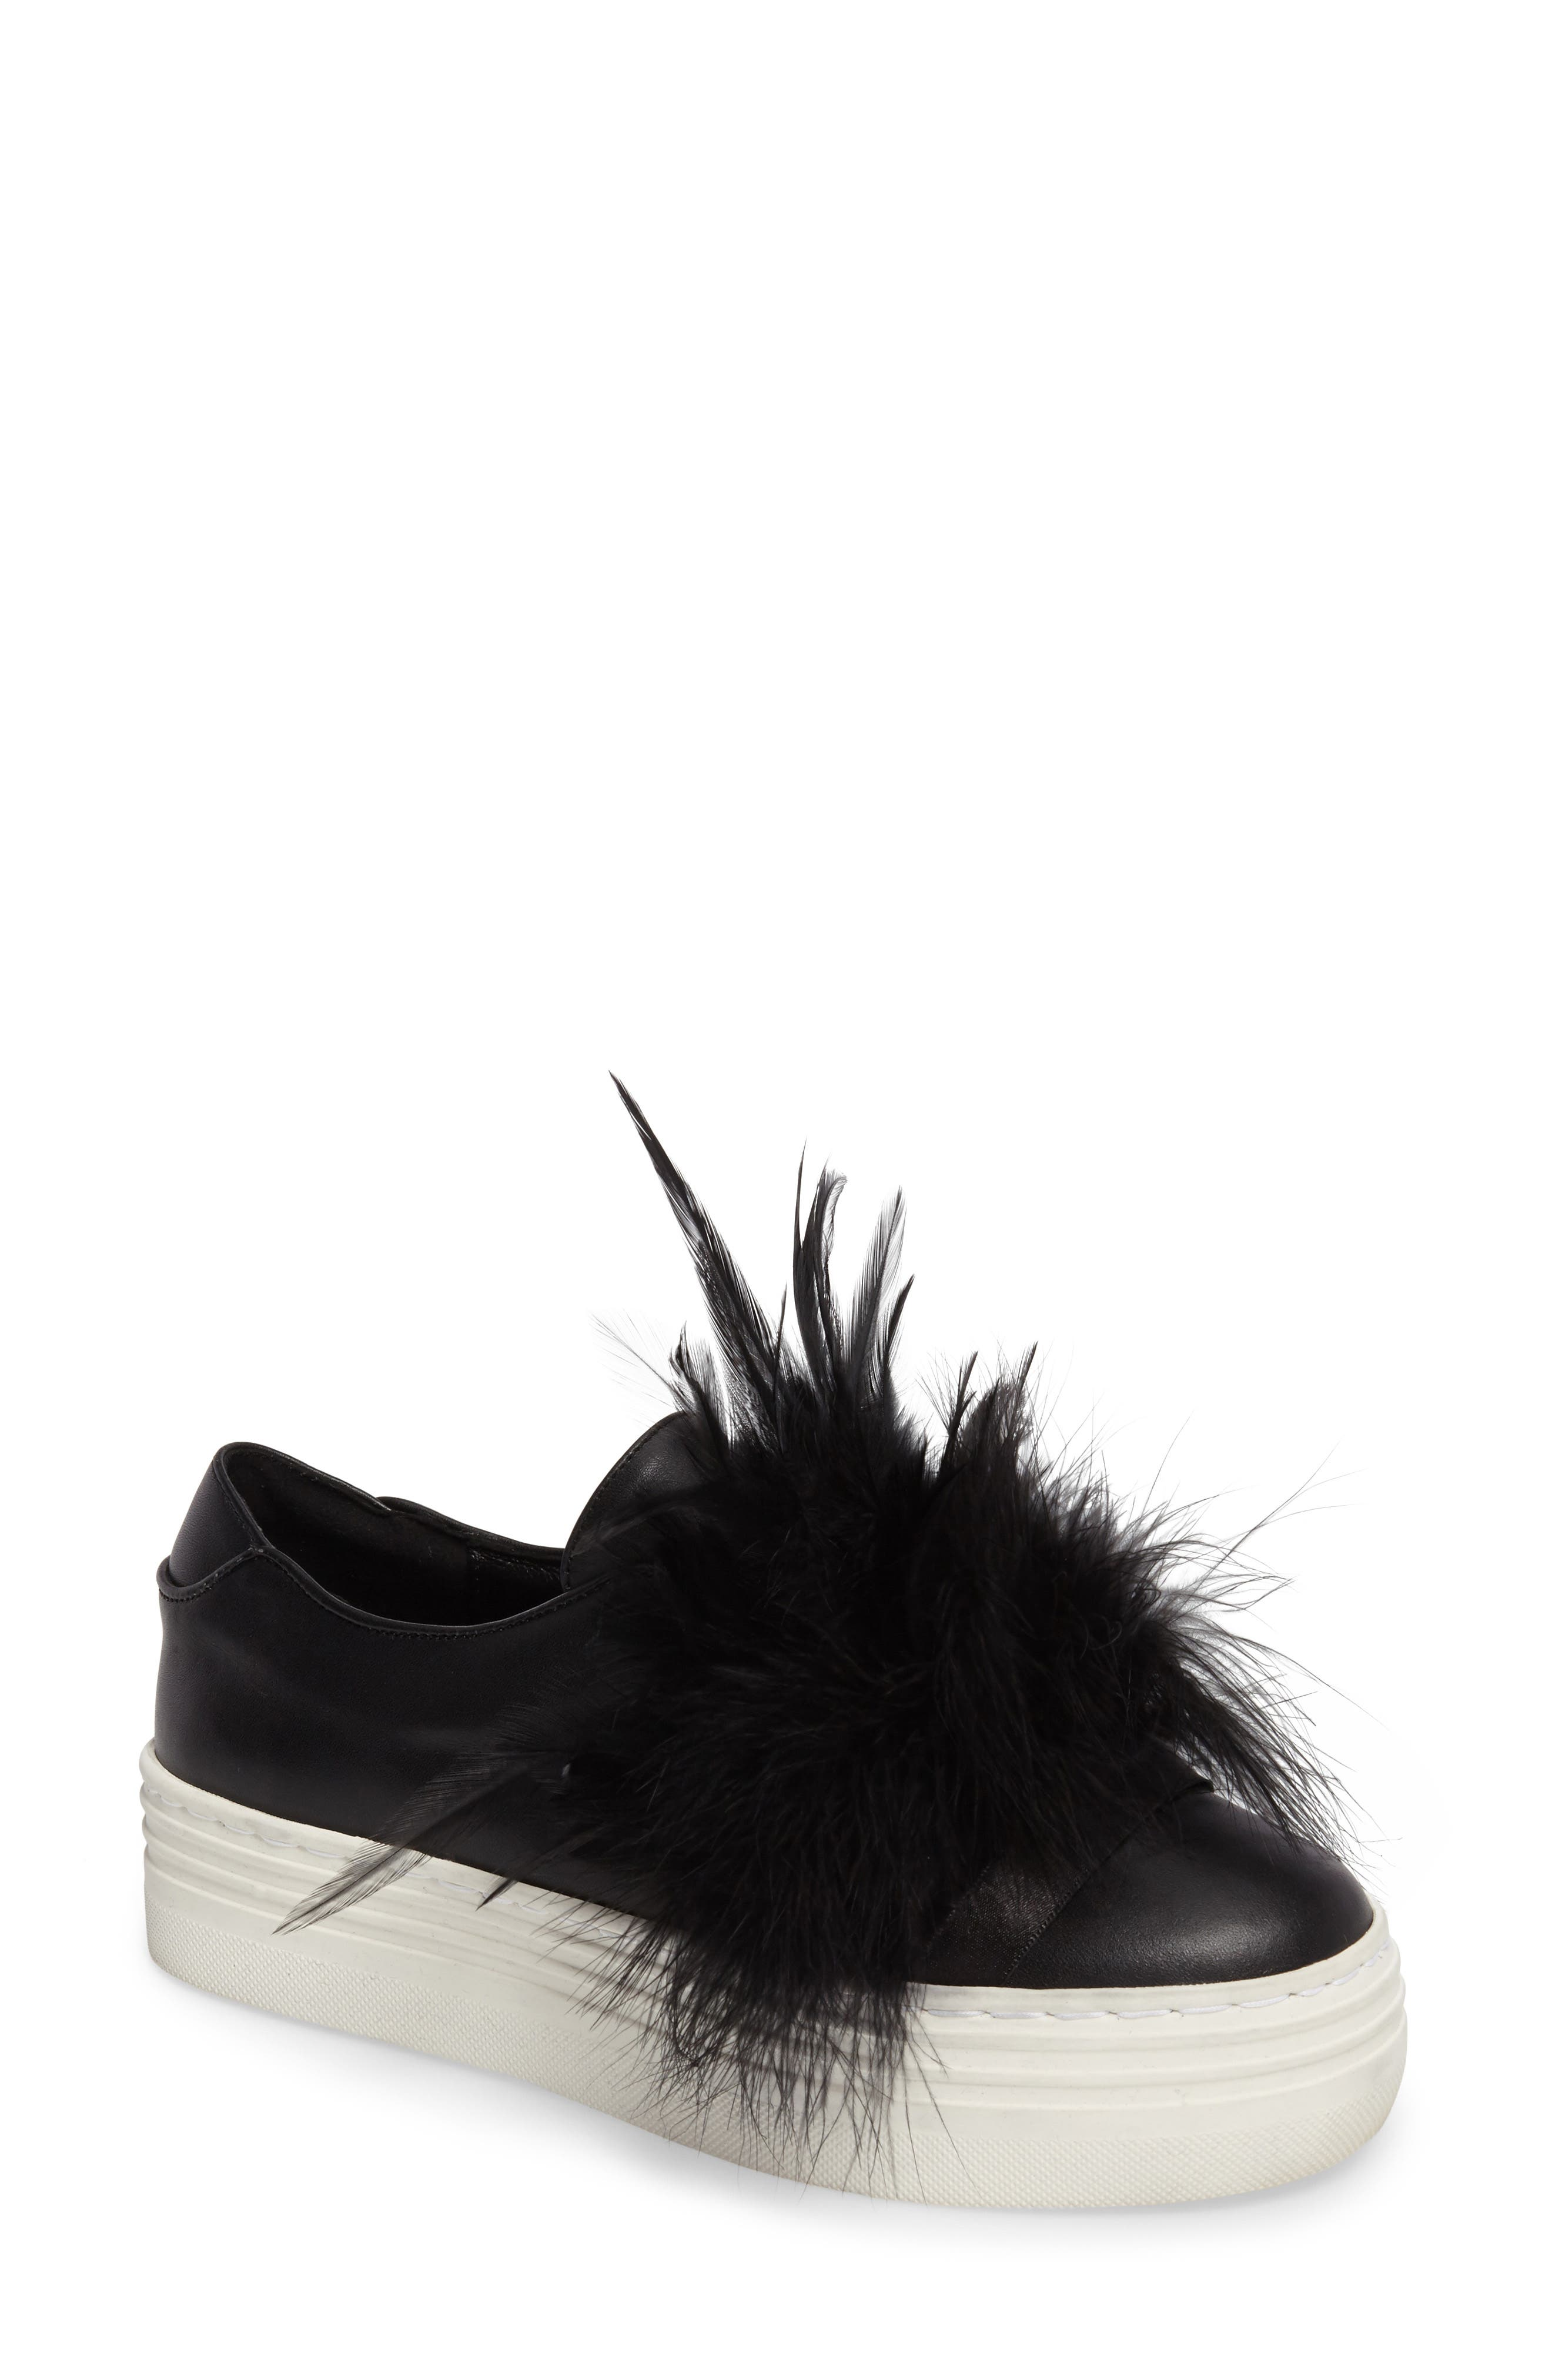 Lily Feather Pom Slip-On Platform Sneaker,                             Main thumbnail 1, color,                             001